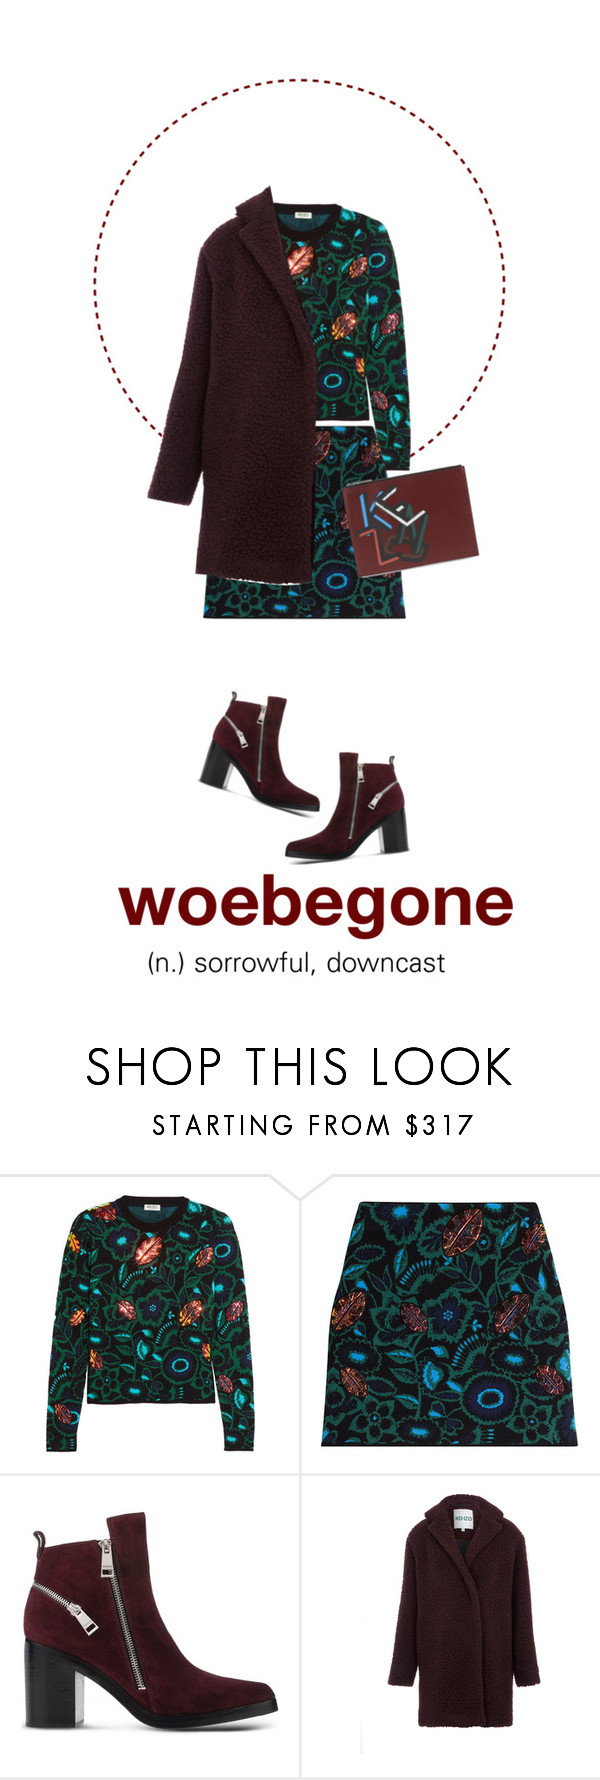 """06.27.15"" by nicolekimlopez24 on Polyvore featuring Kenzo"